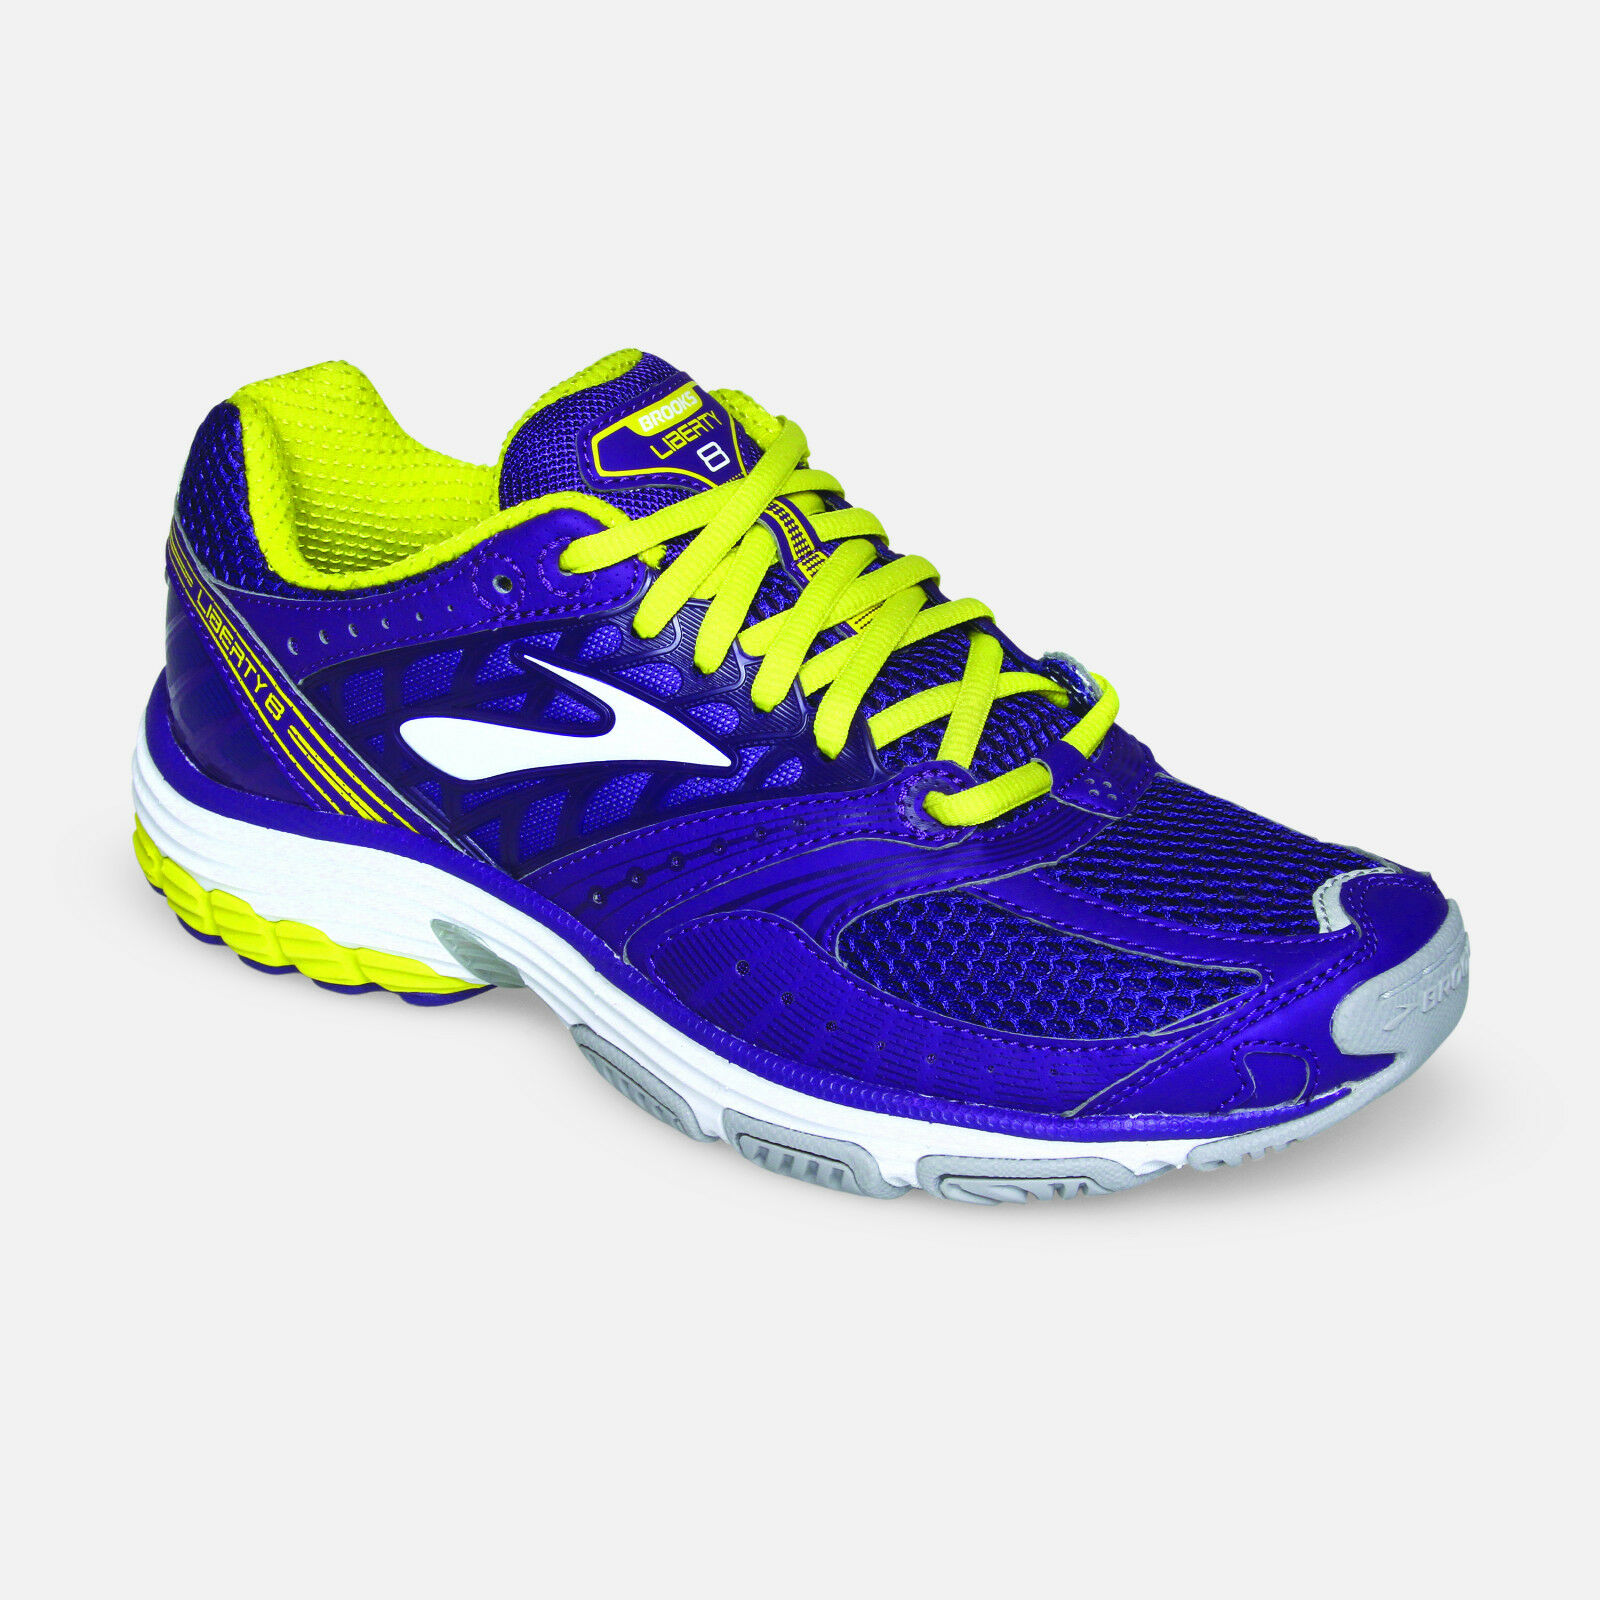 Brooks Liberty 8 donna Crosstrainer (Mesh) (Mesh) (Mesh) (B) (095) + Free Aus Delivery 48a455